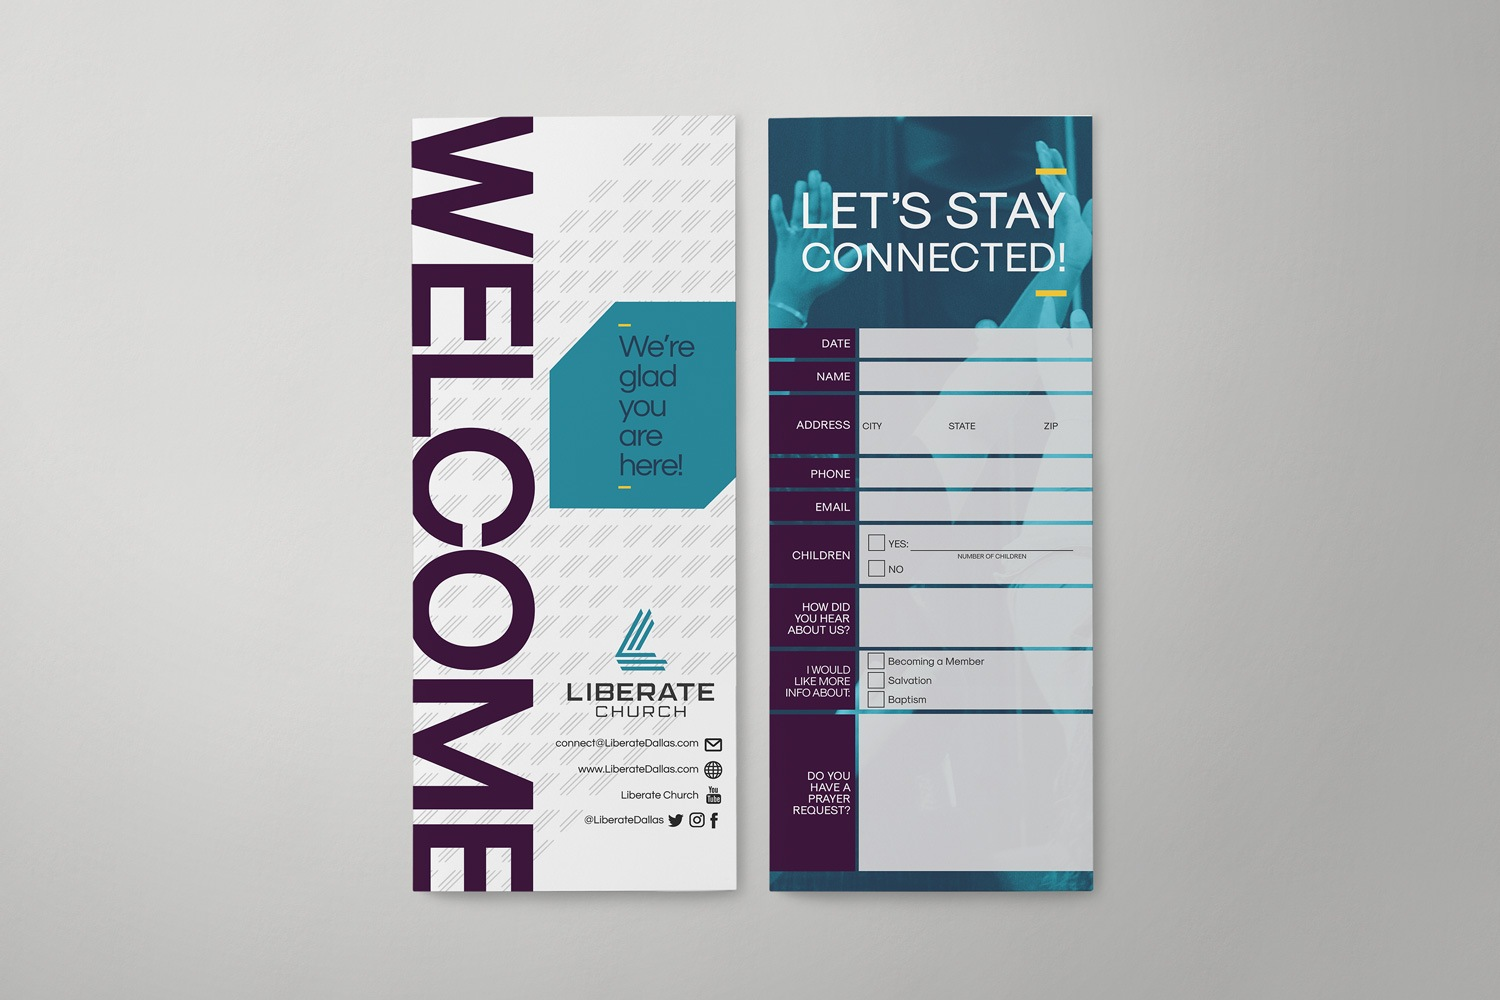 Church connection card design samples, ideas for church branding